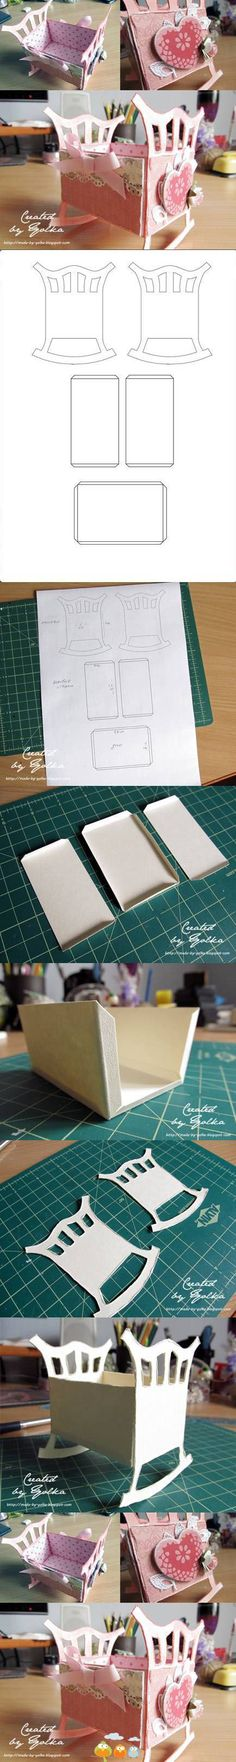 Cradle shaped card  http://www.repiny.com/pin-5483.html                   Repiny - Most inspiring pictures and photos!